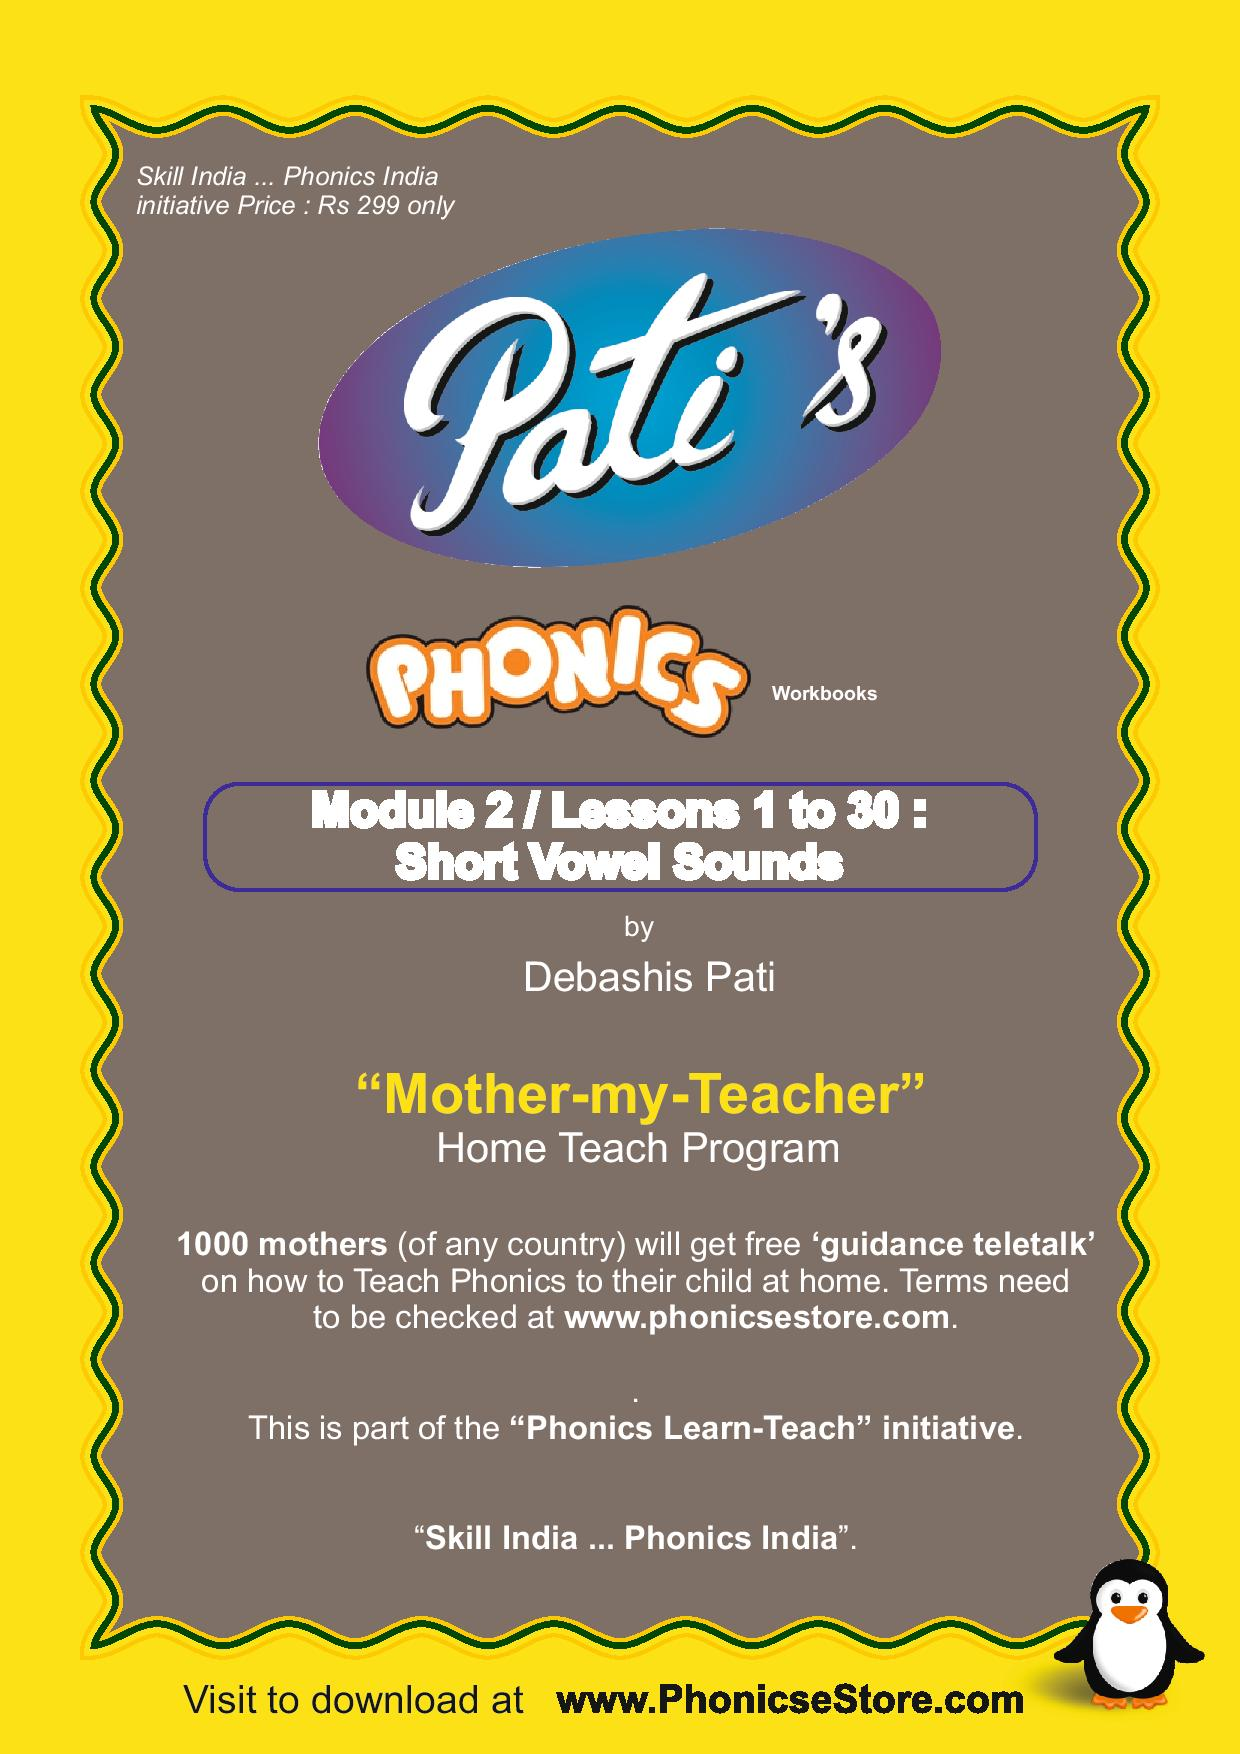 phonics kids classes in alleppey kozhikode tribnadrum palakkad